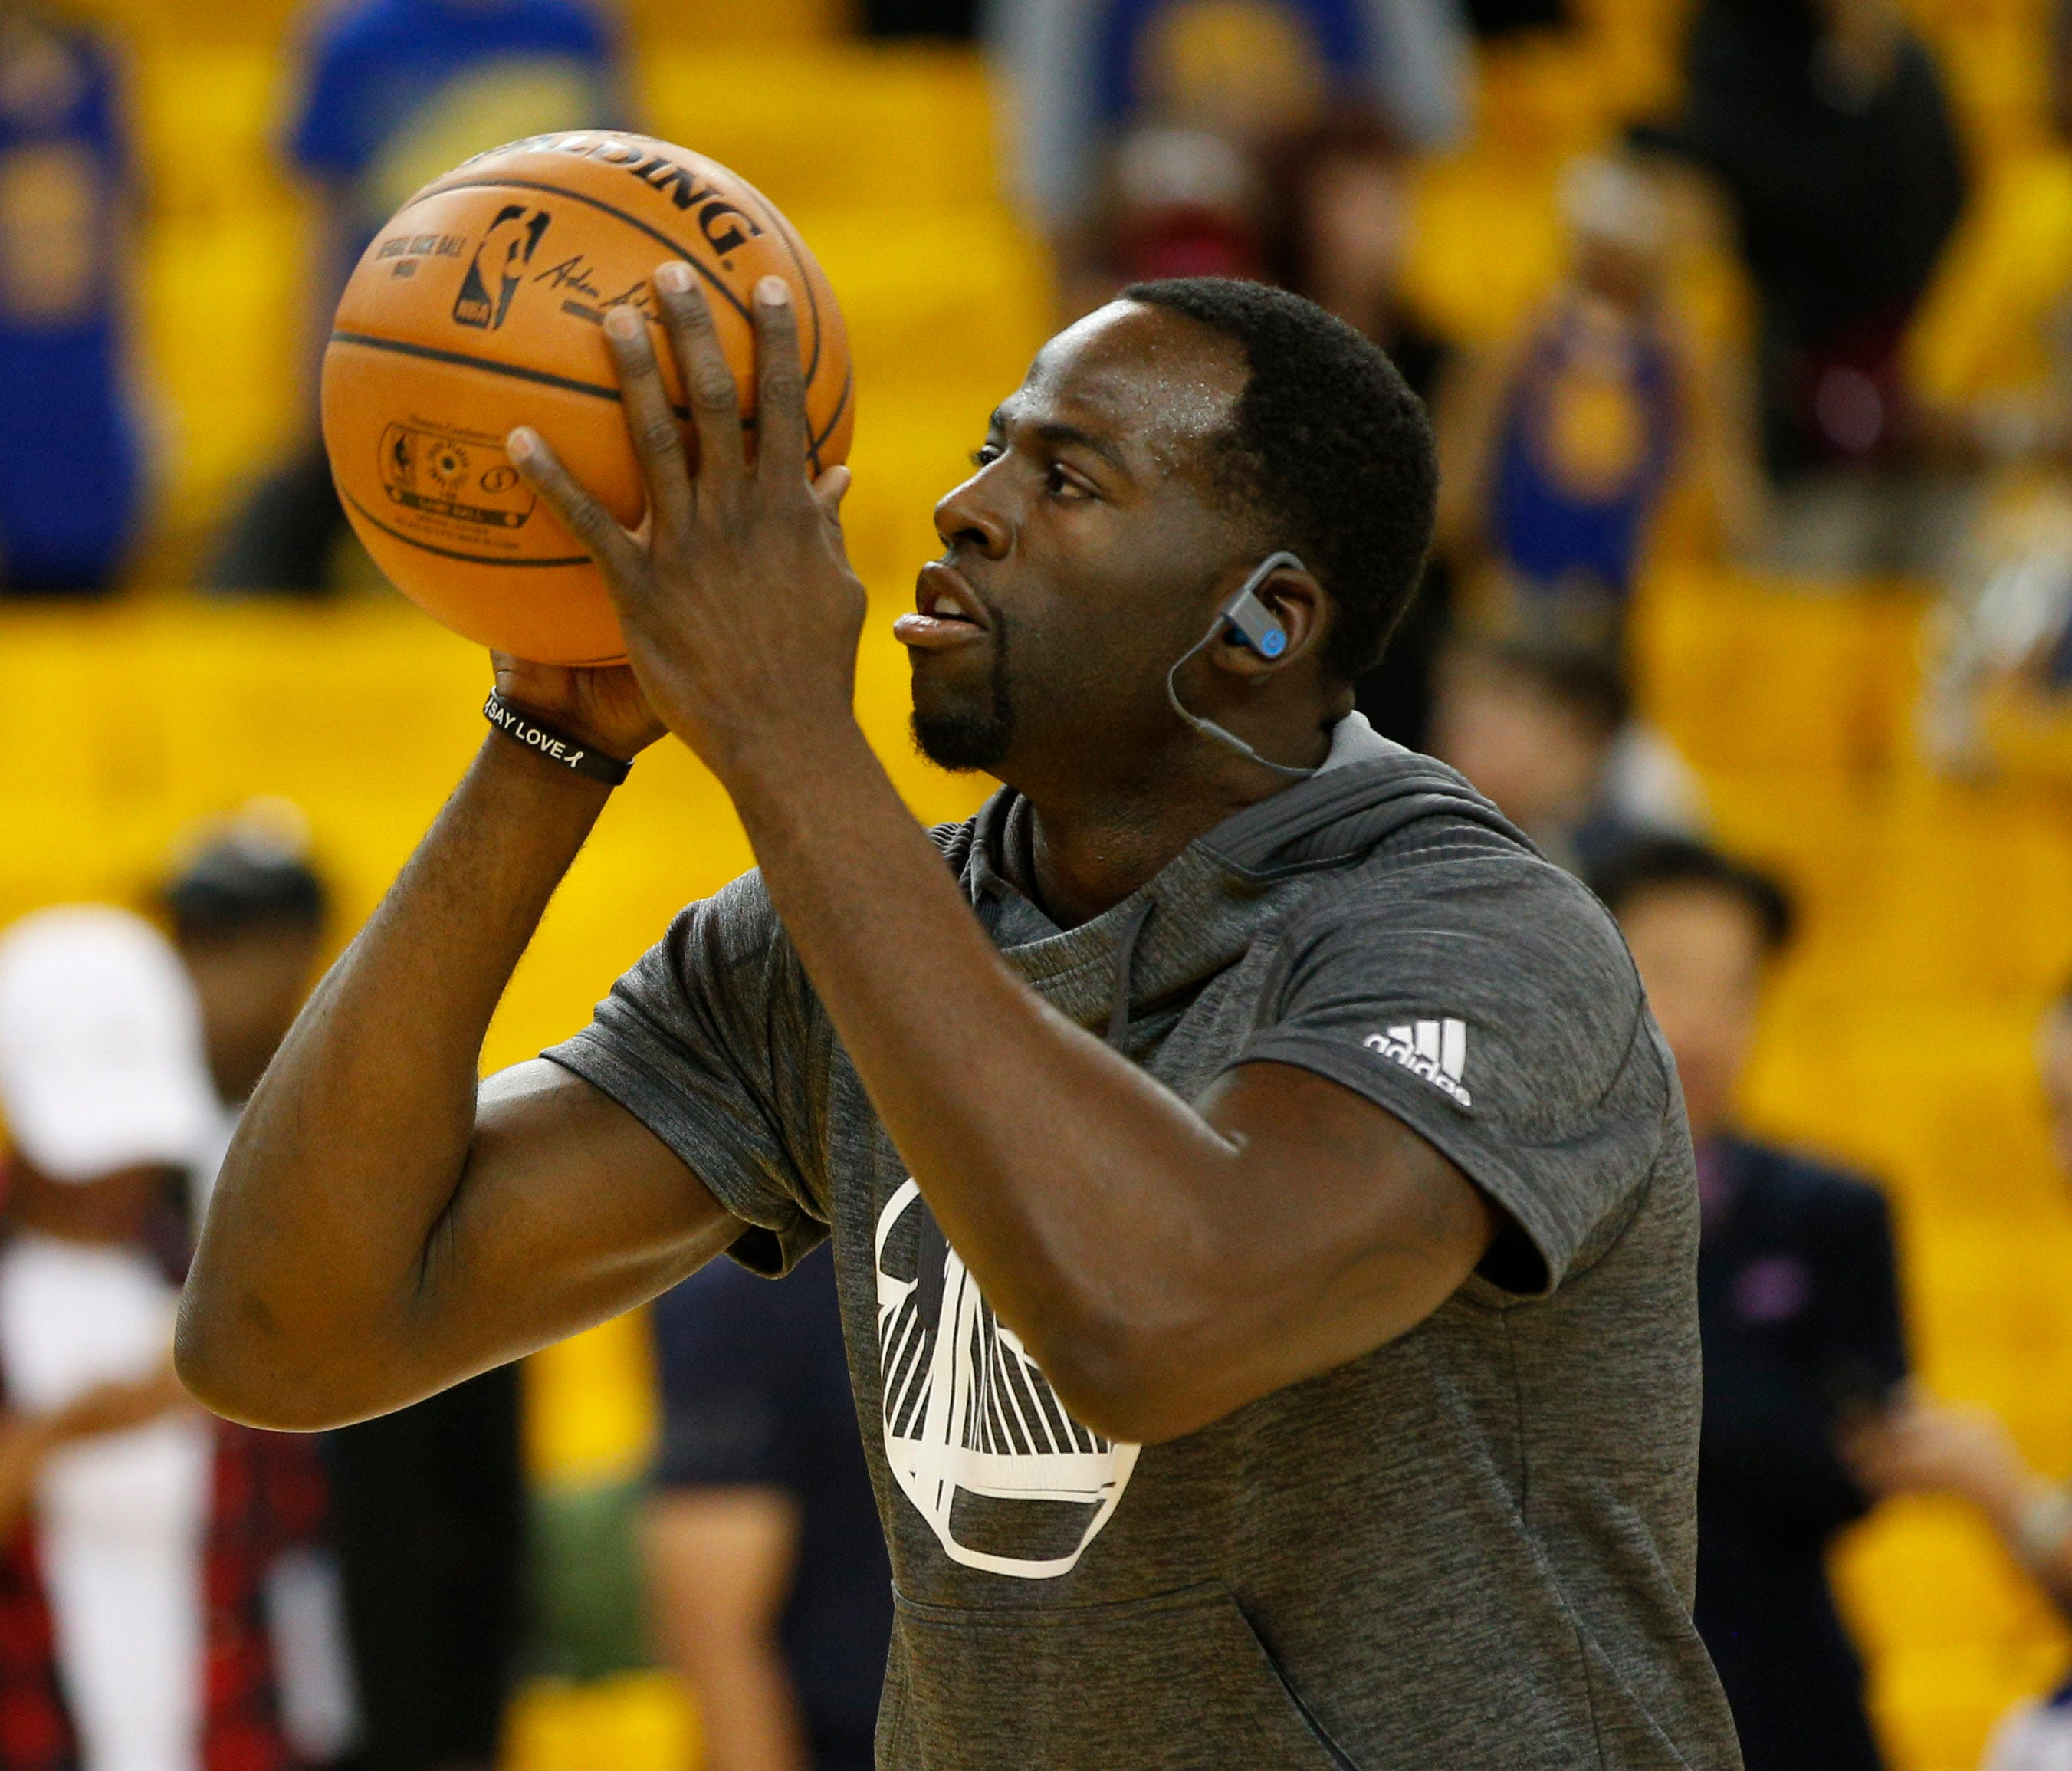 Golden State Warriors forward Draymond Green warms up before Game 2 of the 2017 NBA Finals against the Cleveland Cavaliers.